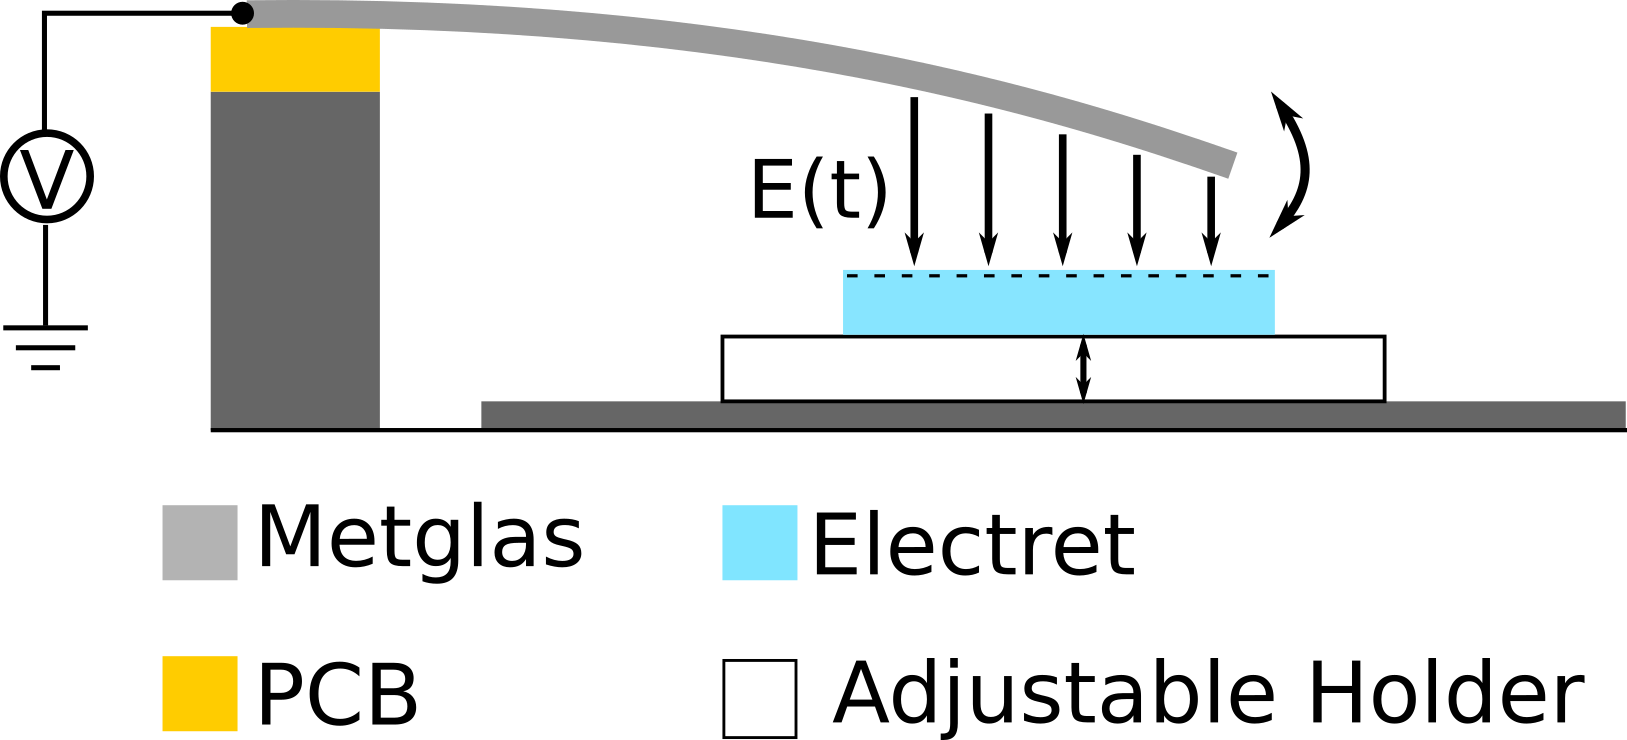 Illustration of the sensor set-up